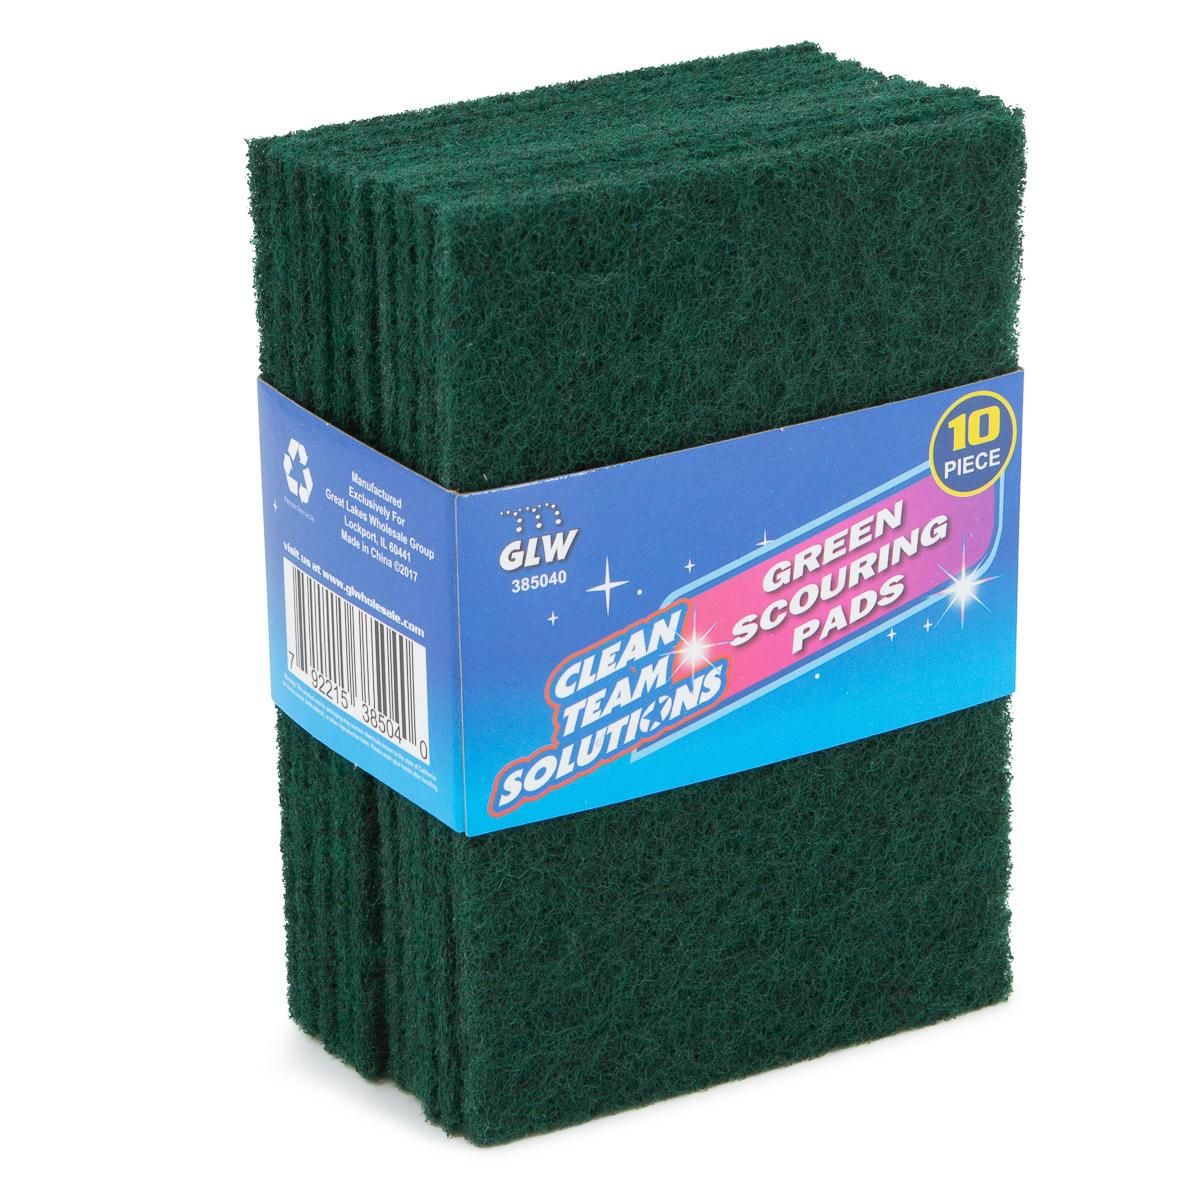 Clean Team Solutions (10 Pack) Green Scouring Pads For Dishes Scrub Pad Scouring Sponges Kitchen Cleaning Supplies